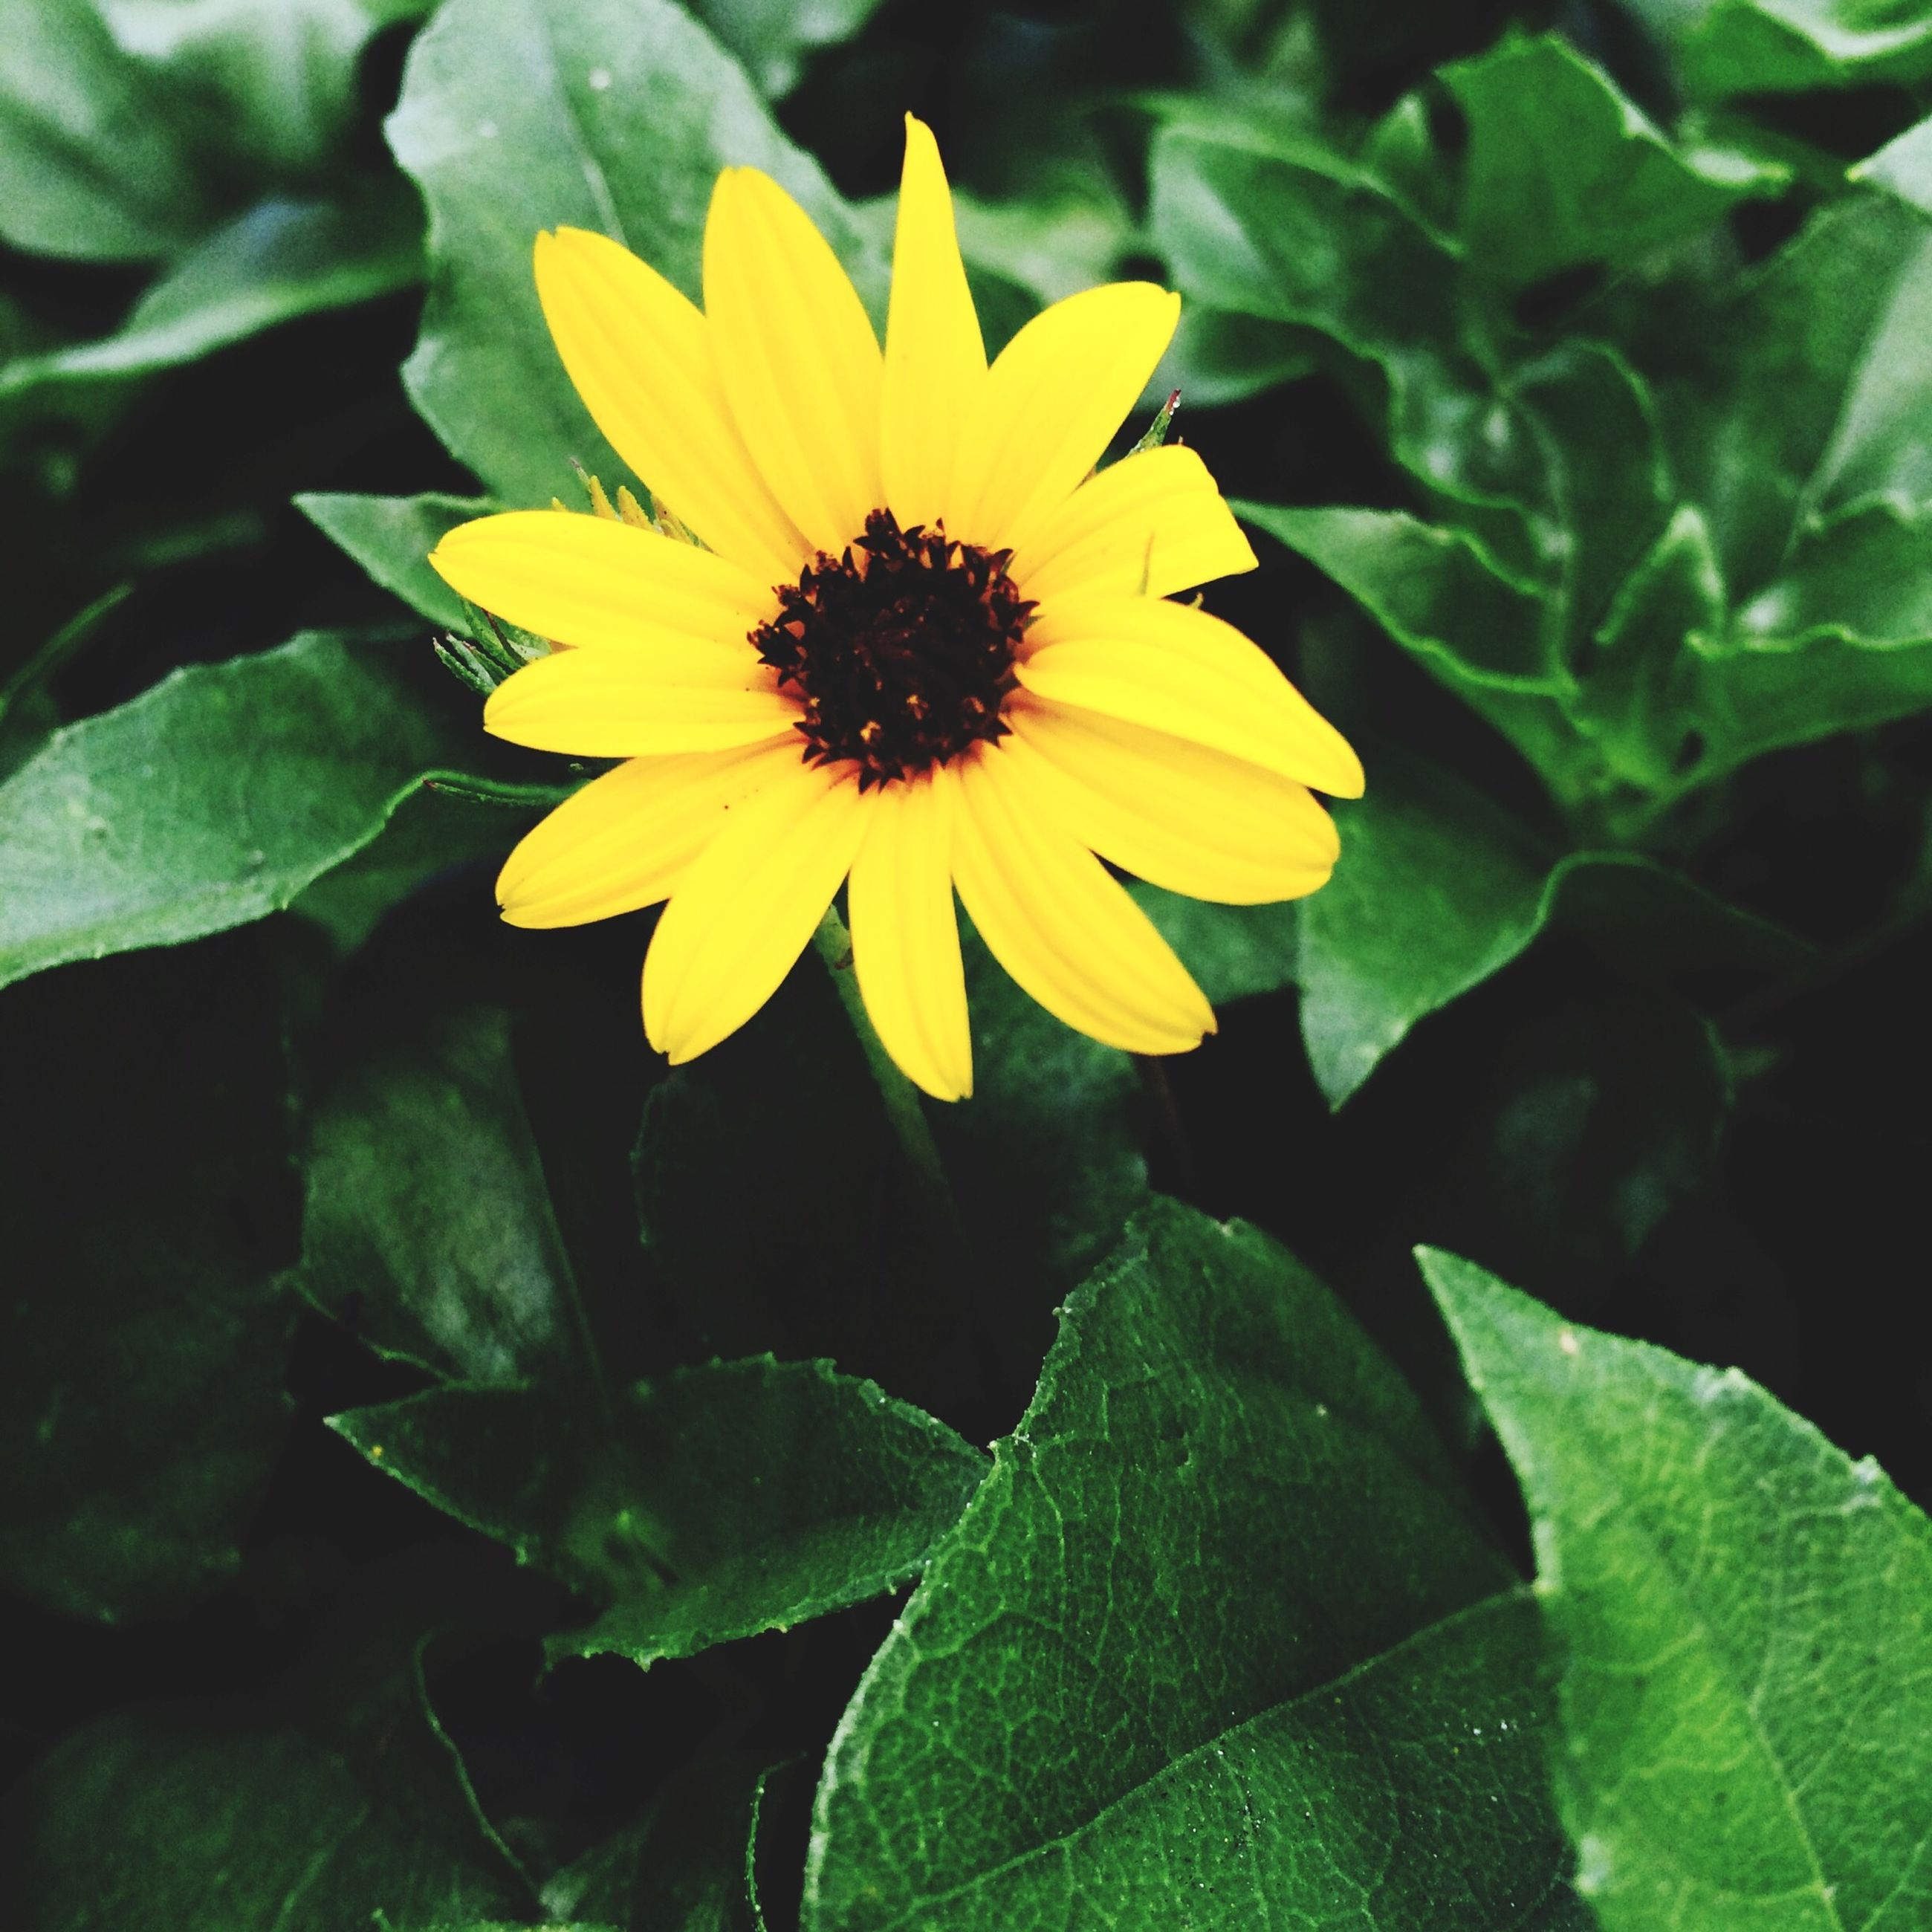 flower, petal, freshness, yellow, flower head, fragility, growth, beauty in nature, leaf, blooming, plant, nature, close-up, pollen, single flower, in bloom, sunflower, green color, blossom, focus on foreground